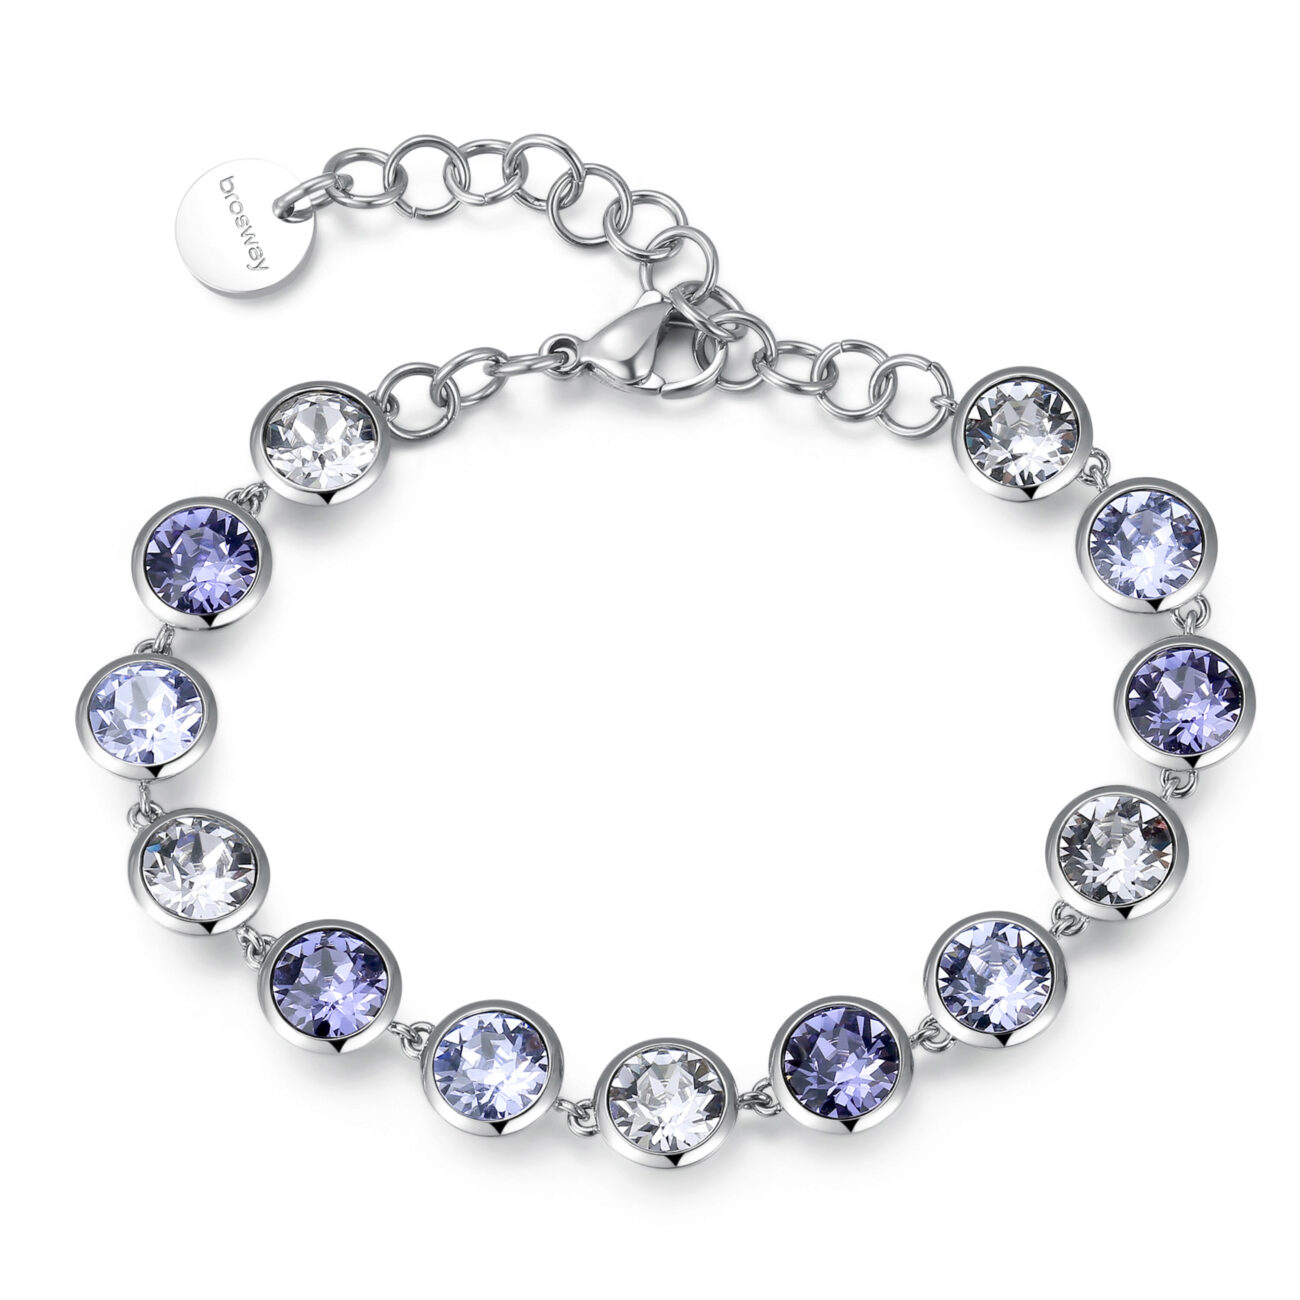 316L stainless steel bracelet with smoky mauve, tanzanite and provence lavender crystals.